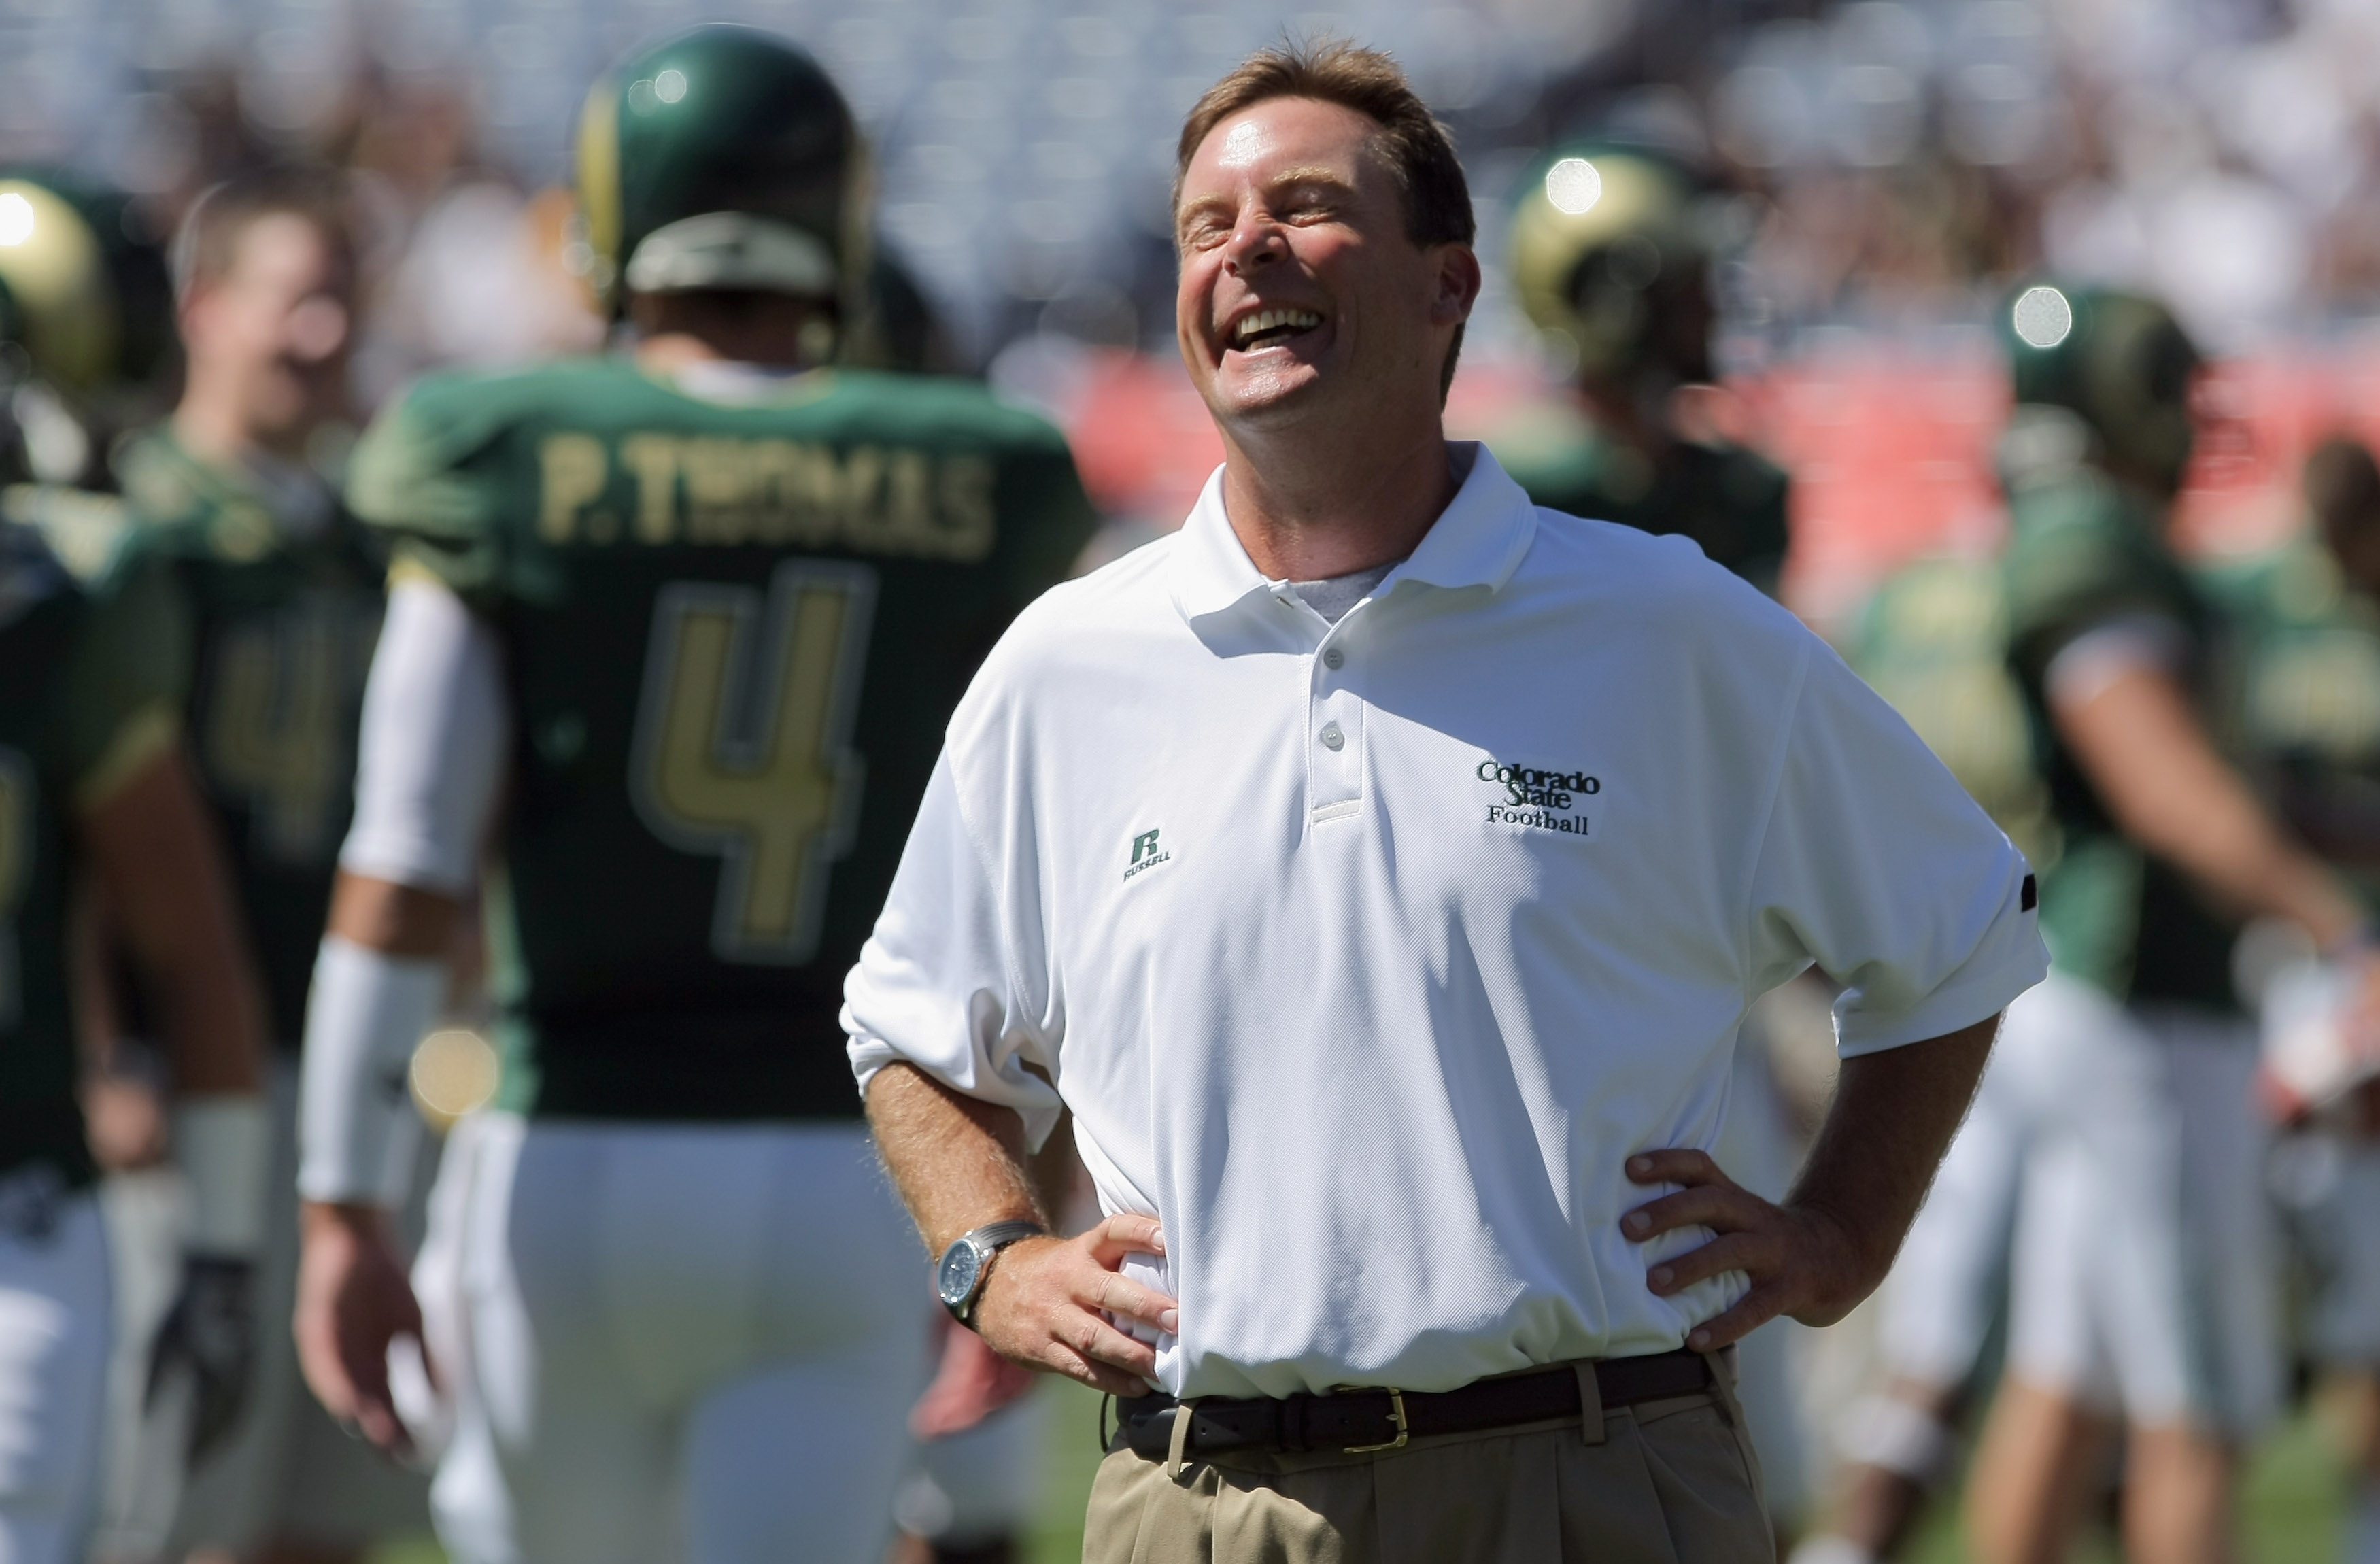 DENVER - SEPTEMBER 04:  Head coach Steve Fairchild of the Colorado State Rams reacts after talking to quarterback Pete Thomas #4 as they face the Colorado Buffaloes in the Rocky Mountain Showdown at INVESCO Field at Mile High on September 4, 2010 in Denve